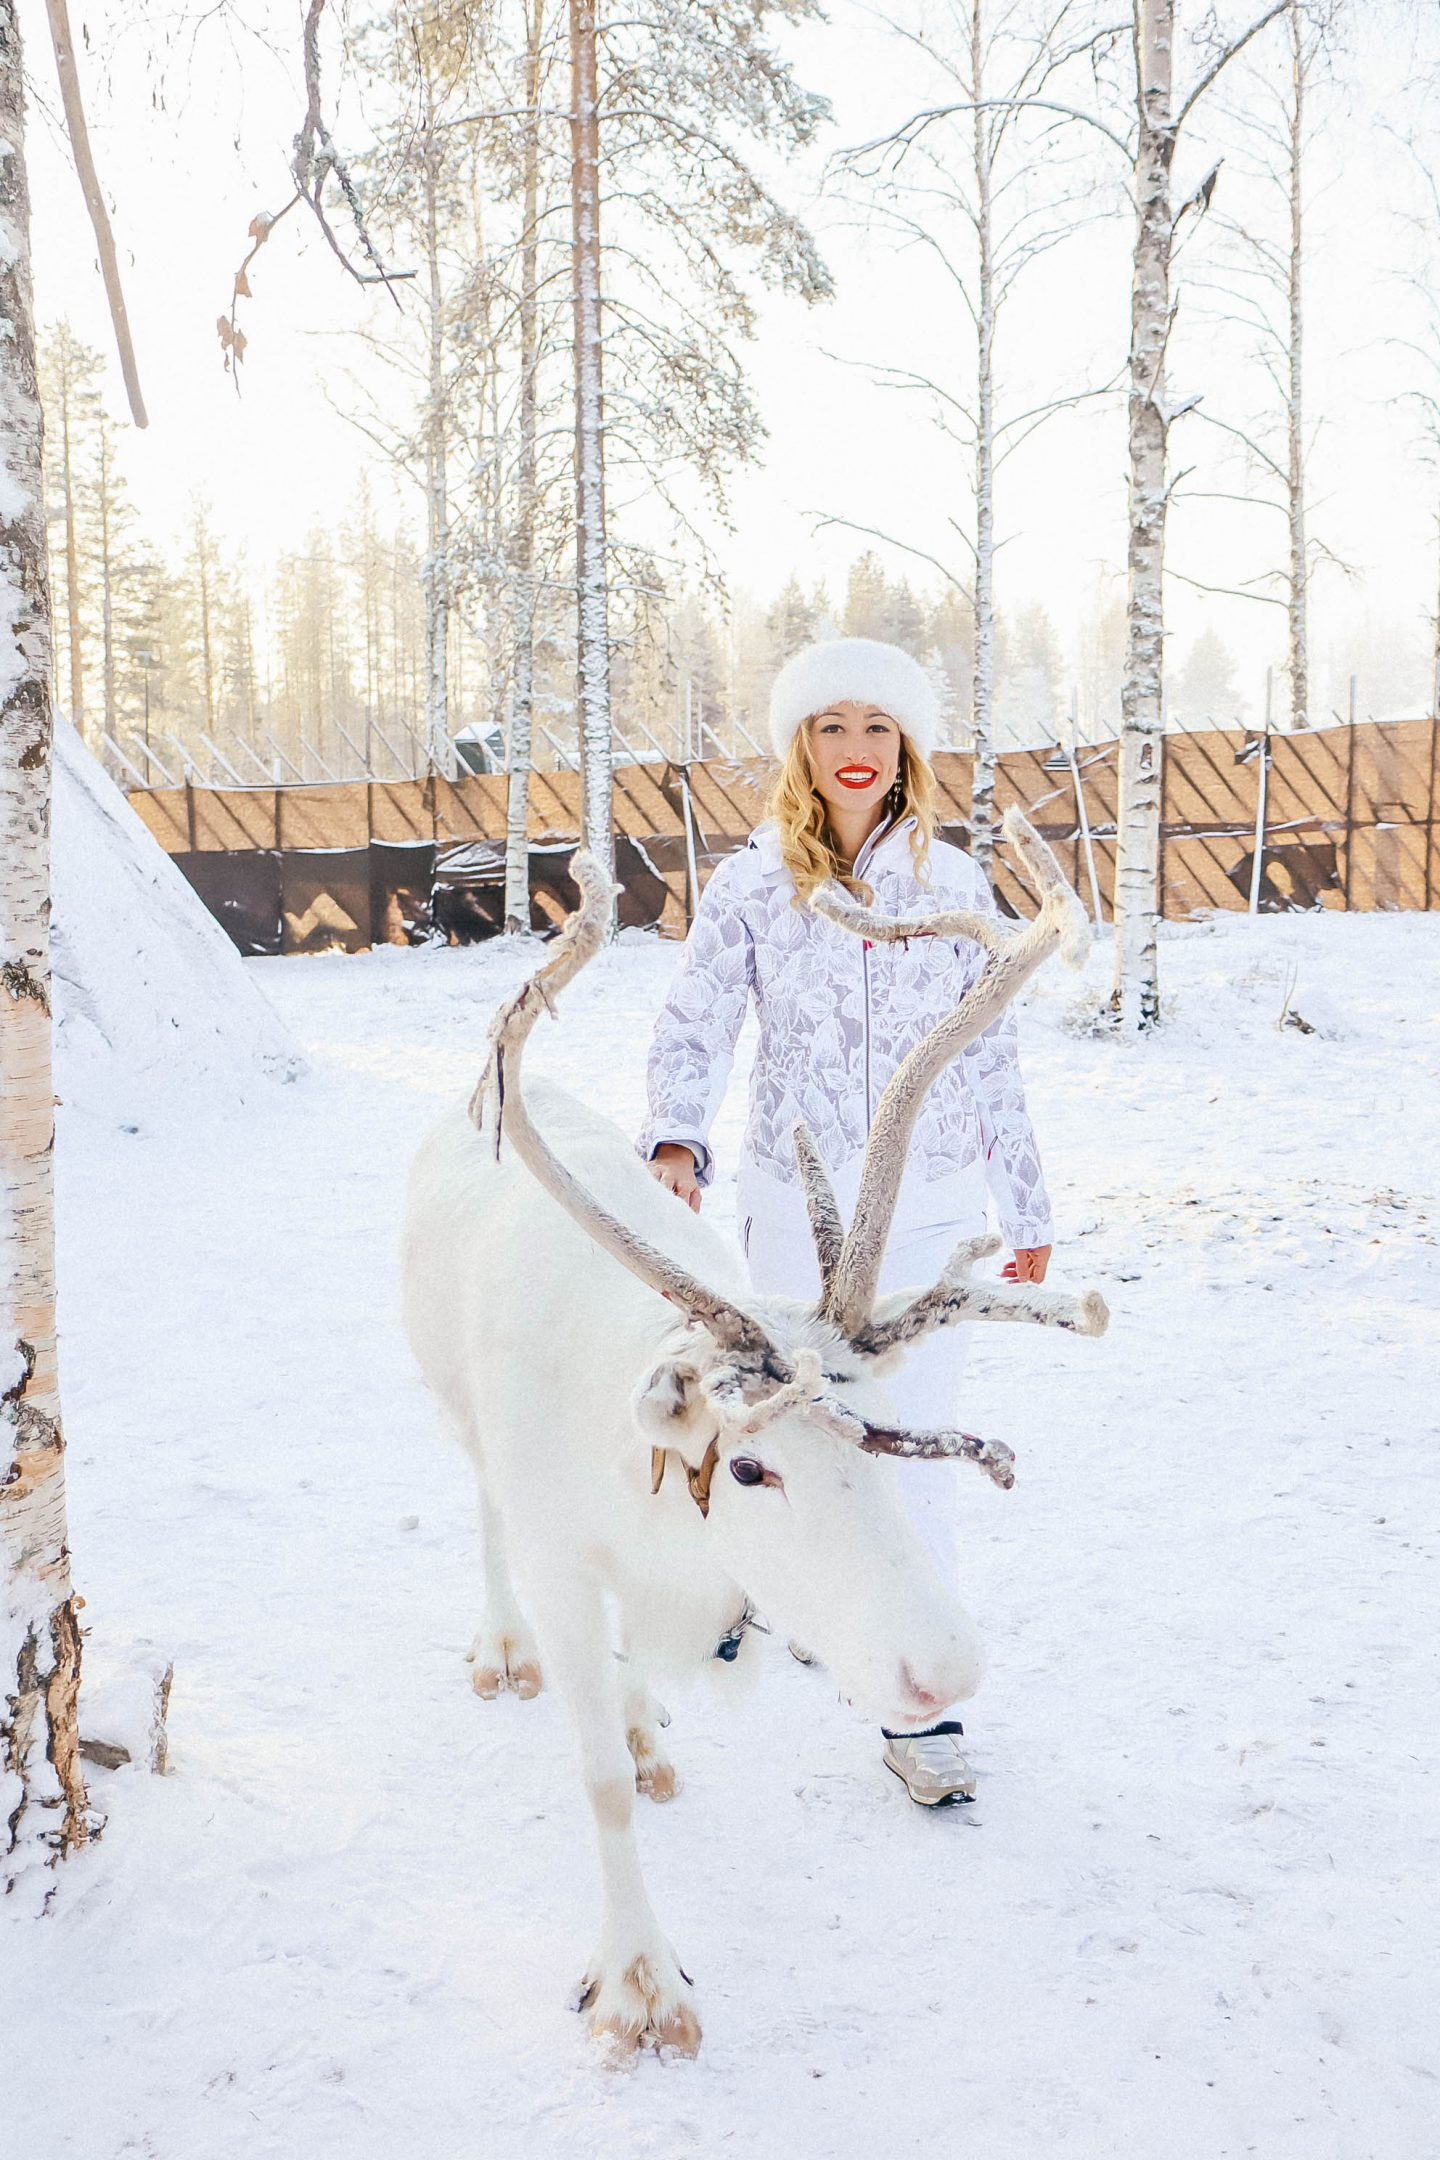 Trip to the Finnish Lapland with Visit Rovaniemi